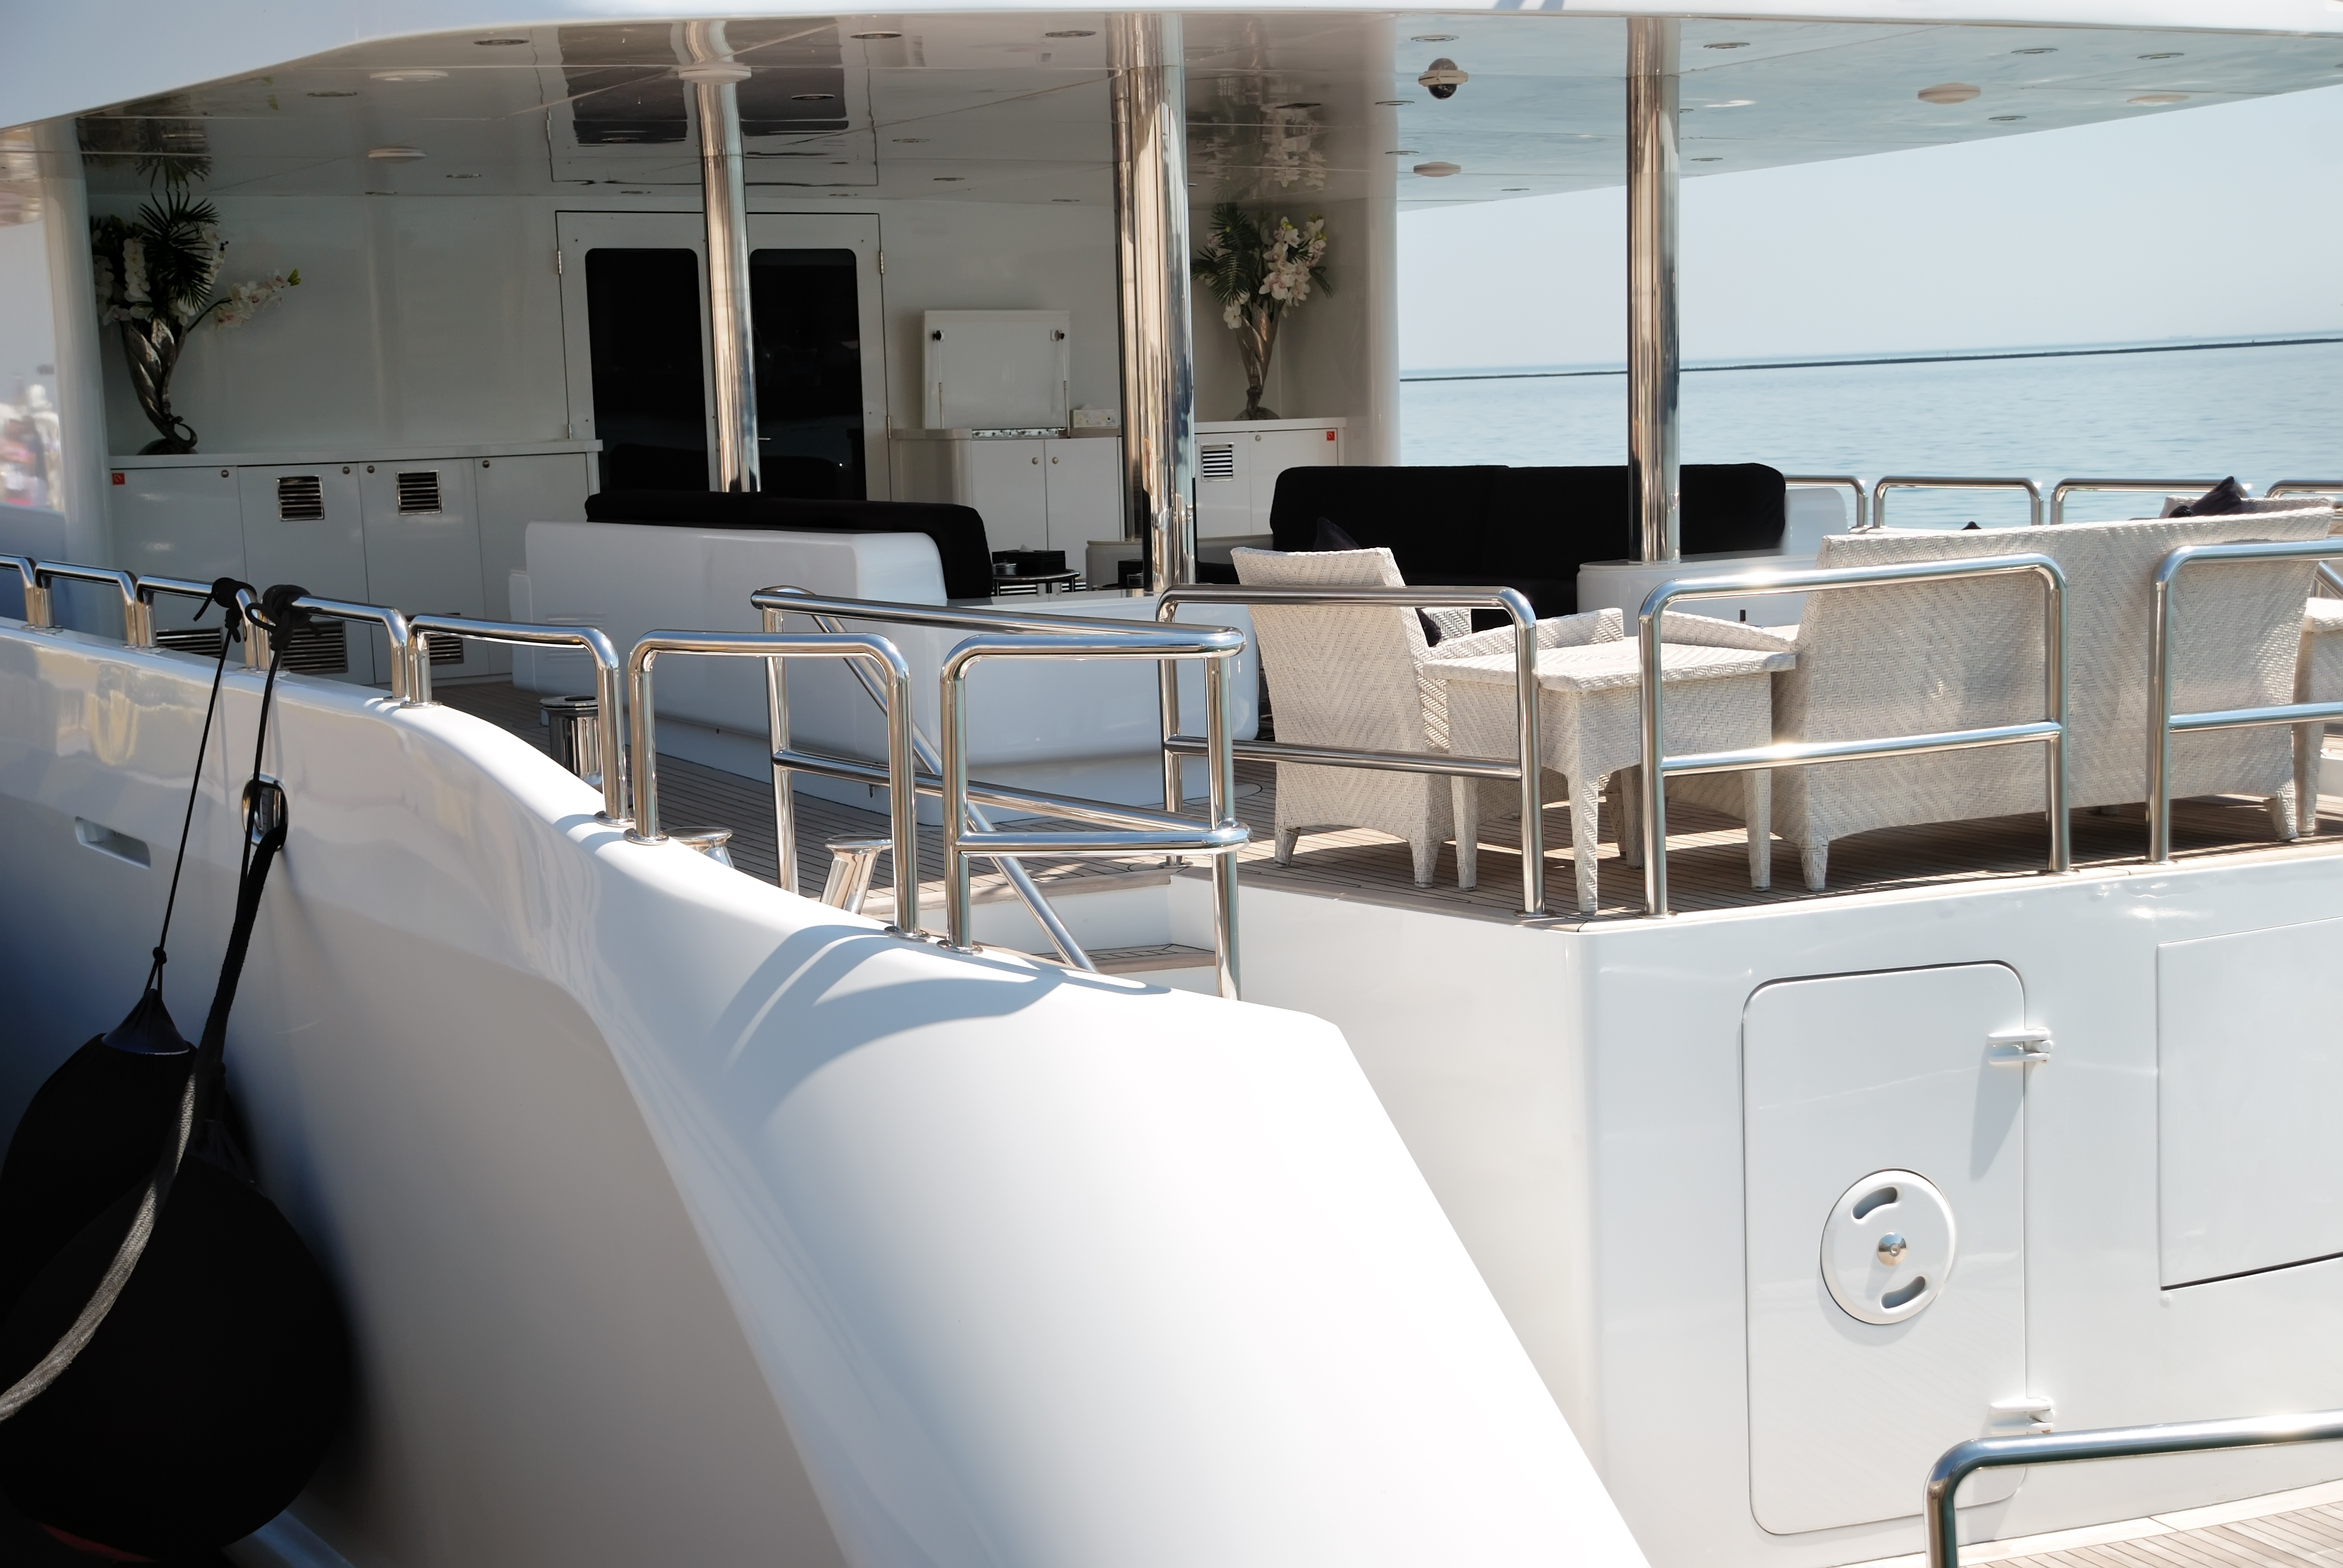 Interior of white yachts on an anchor in harbour